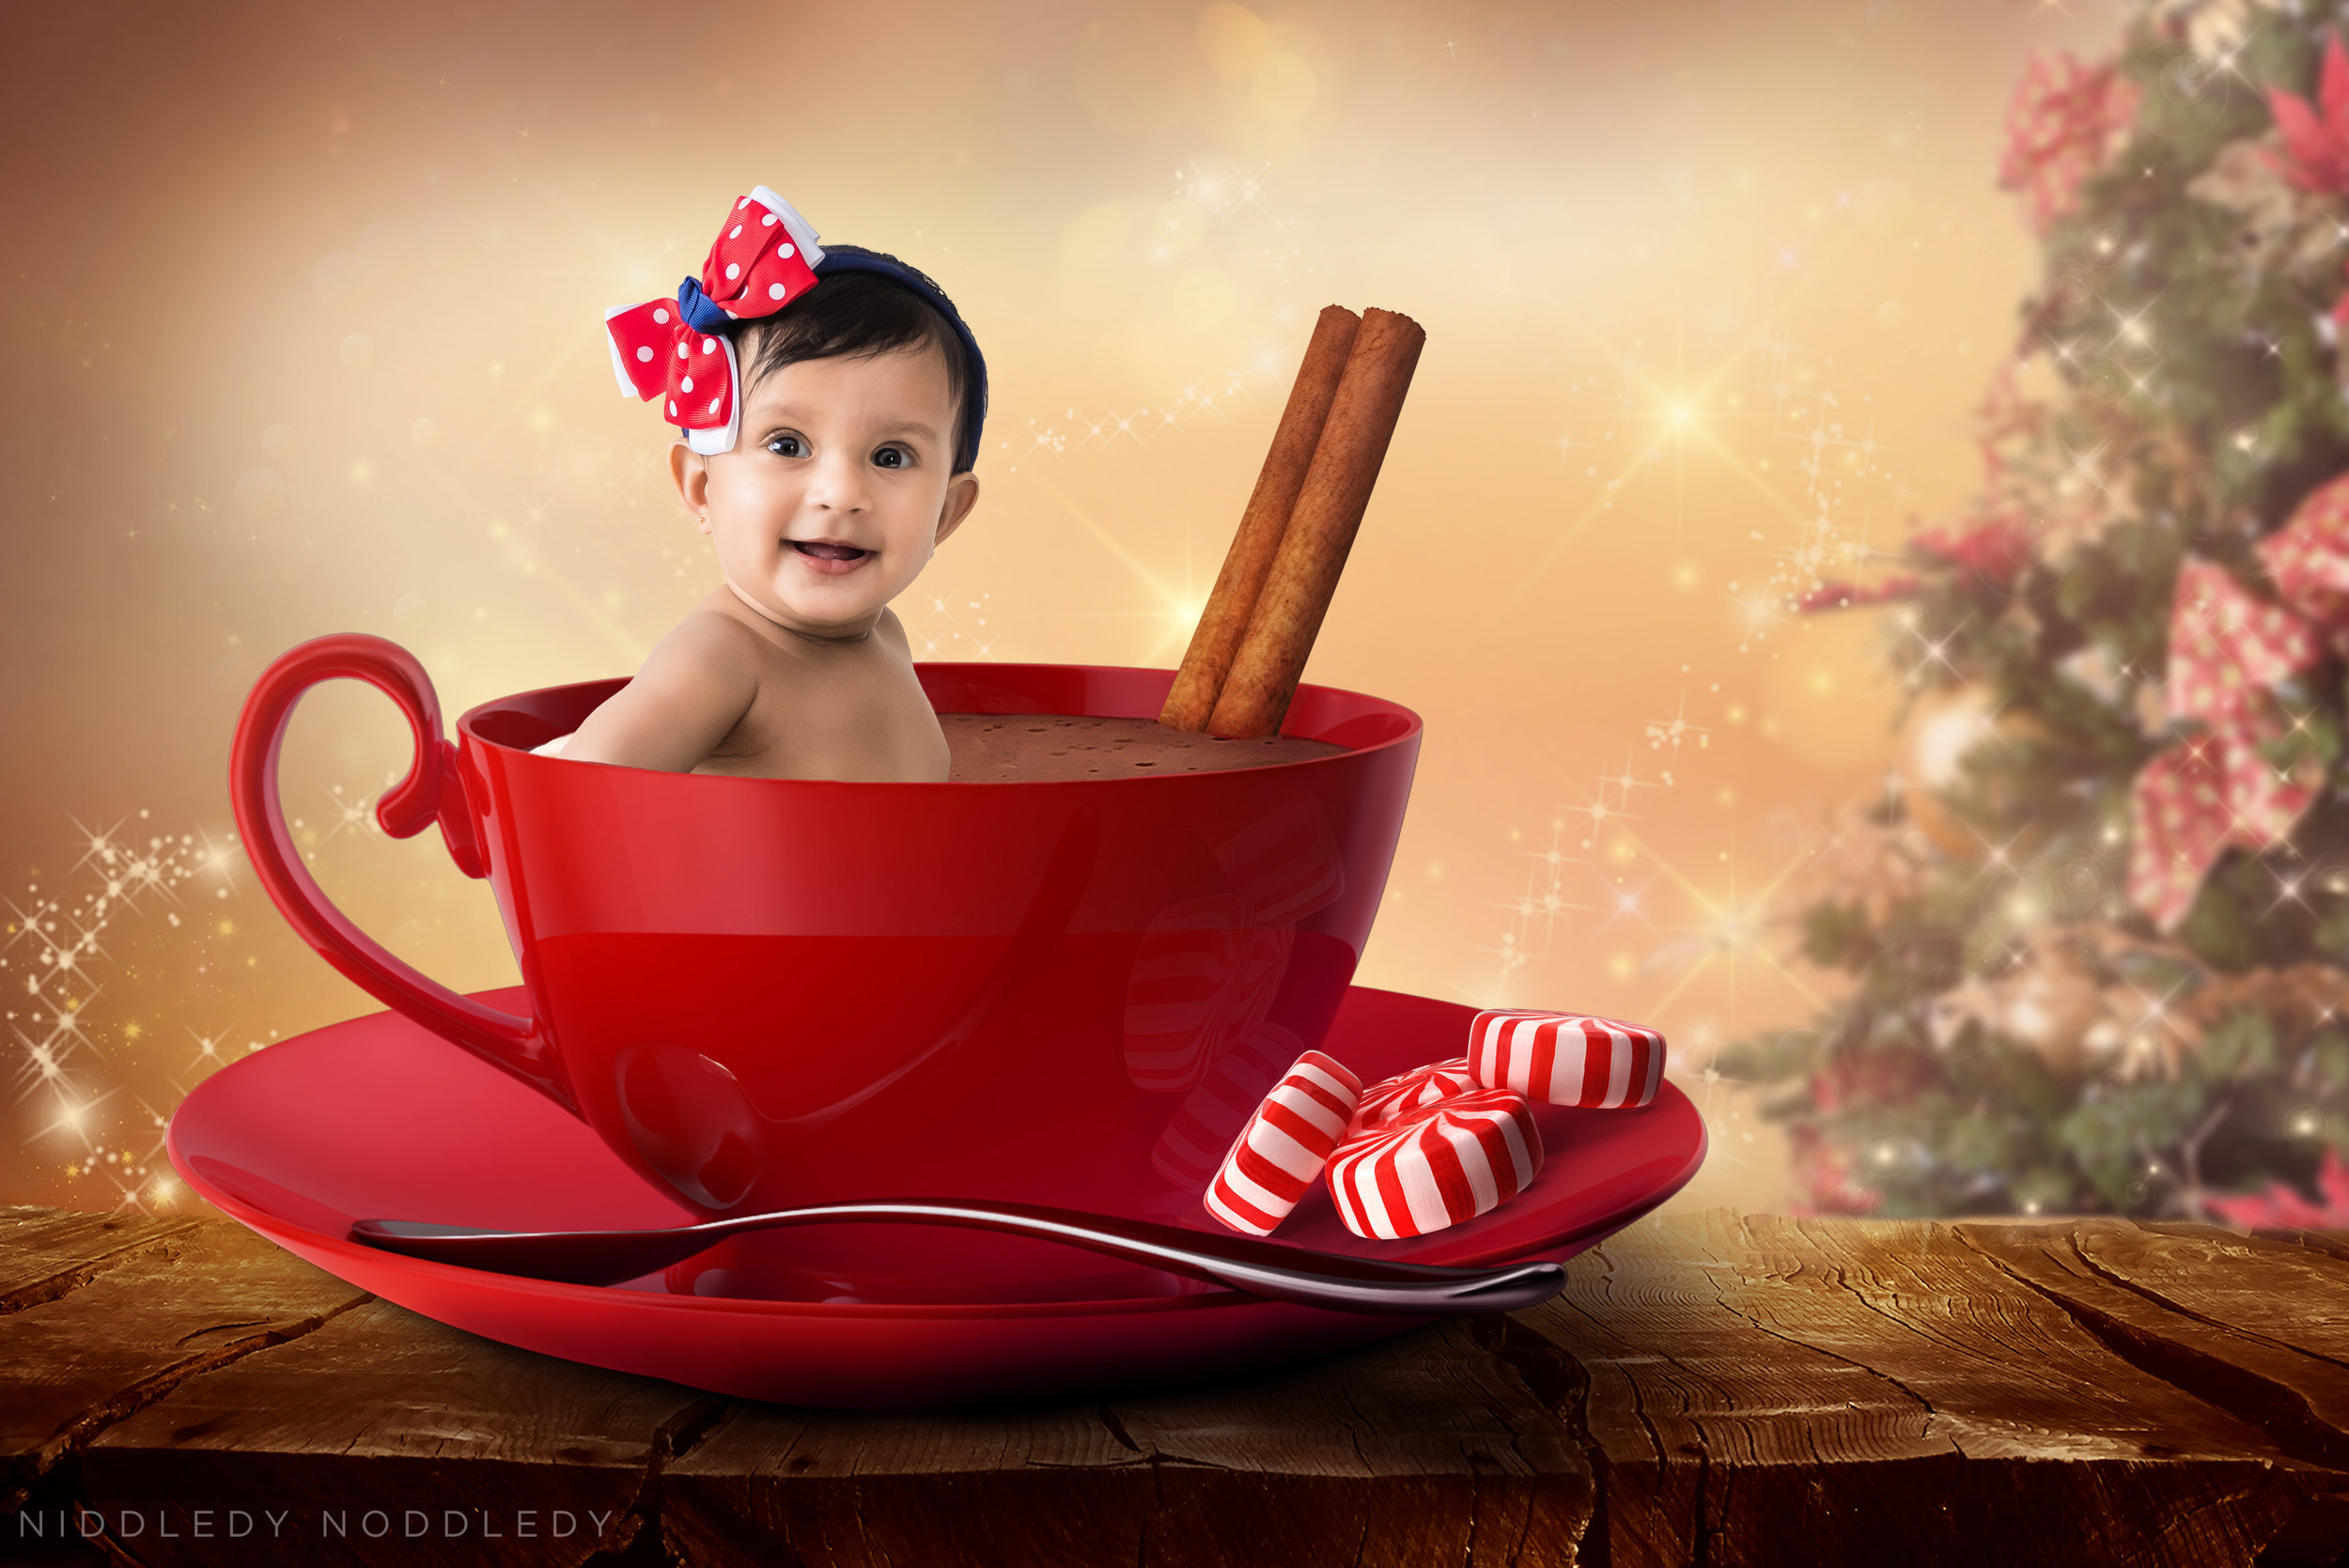 Anaisha Baby Photoshoot ❤ NiddledyNoddledy.com ~ Bumps to Babies Photography, Kolkata - 120.jpg